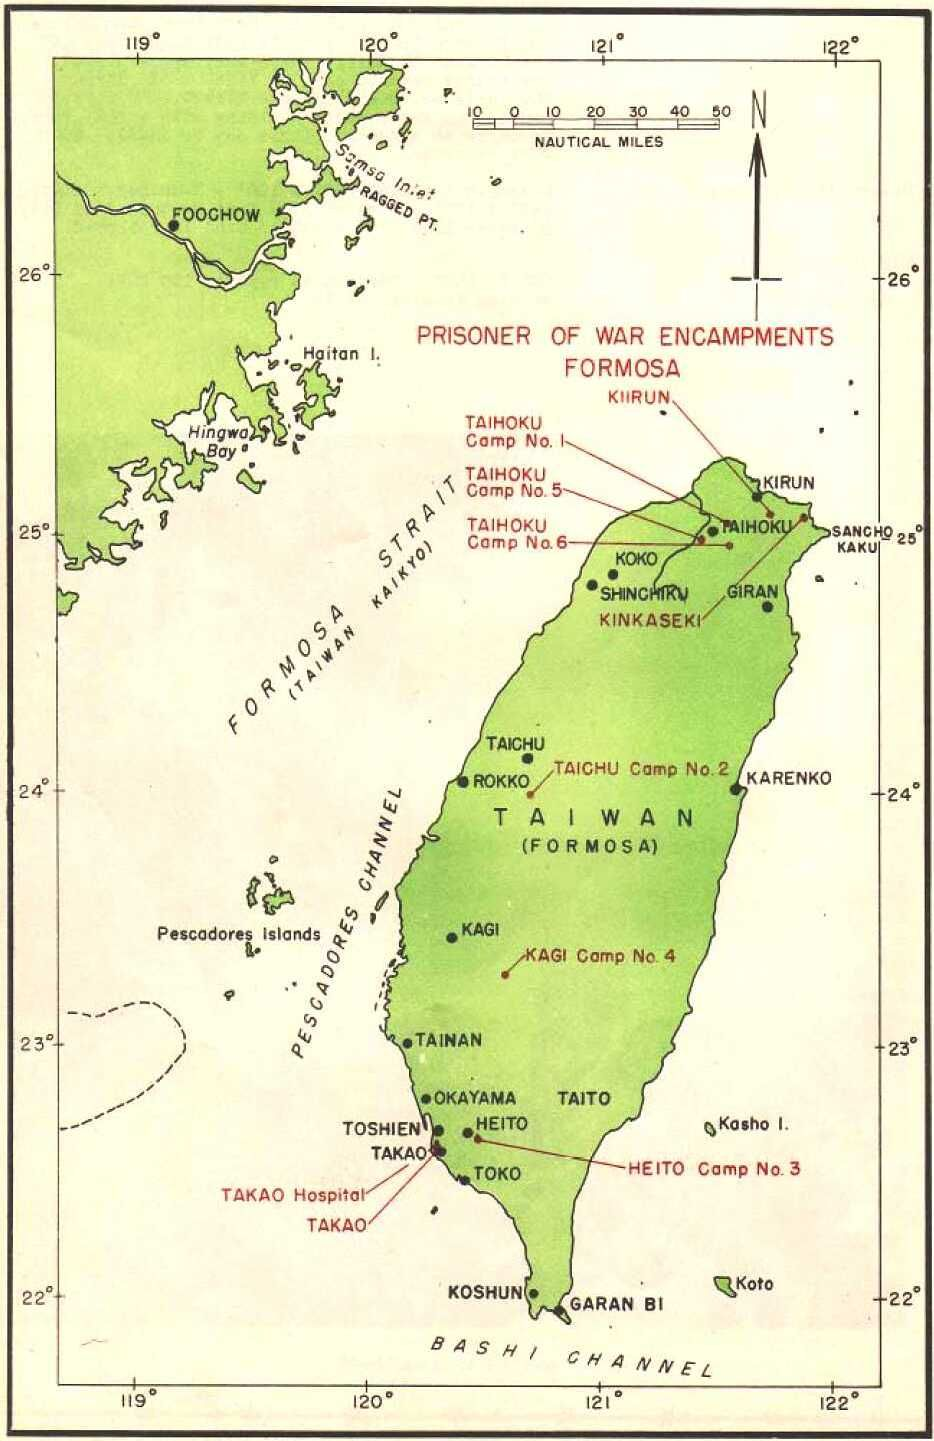 Map] Map of Taiwan (Formosa) indicating the locations of Prisoner-of Korean War Map Of Formosa on map of cuban missile crisis, map of pre world war 1, map of afghan war, map of world war 11, map of u.s. civil war, map of great war, map of nigerian civil war, map of vietnam war, map of world war i, map of gulf war, map of korean peninsula, map of berlin blockade, map of detente, map of islamic war, map of pacific war, map of korea, map of indian war, map of first indochina war, map of air force, map of asia,